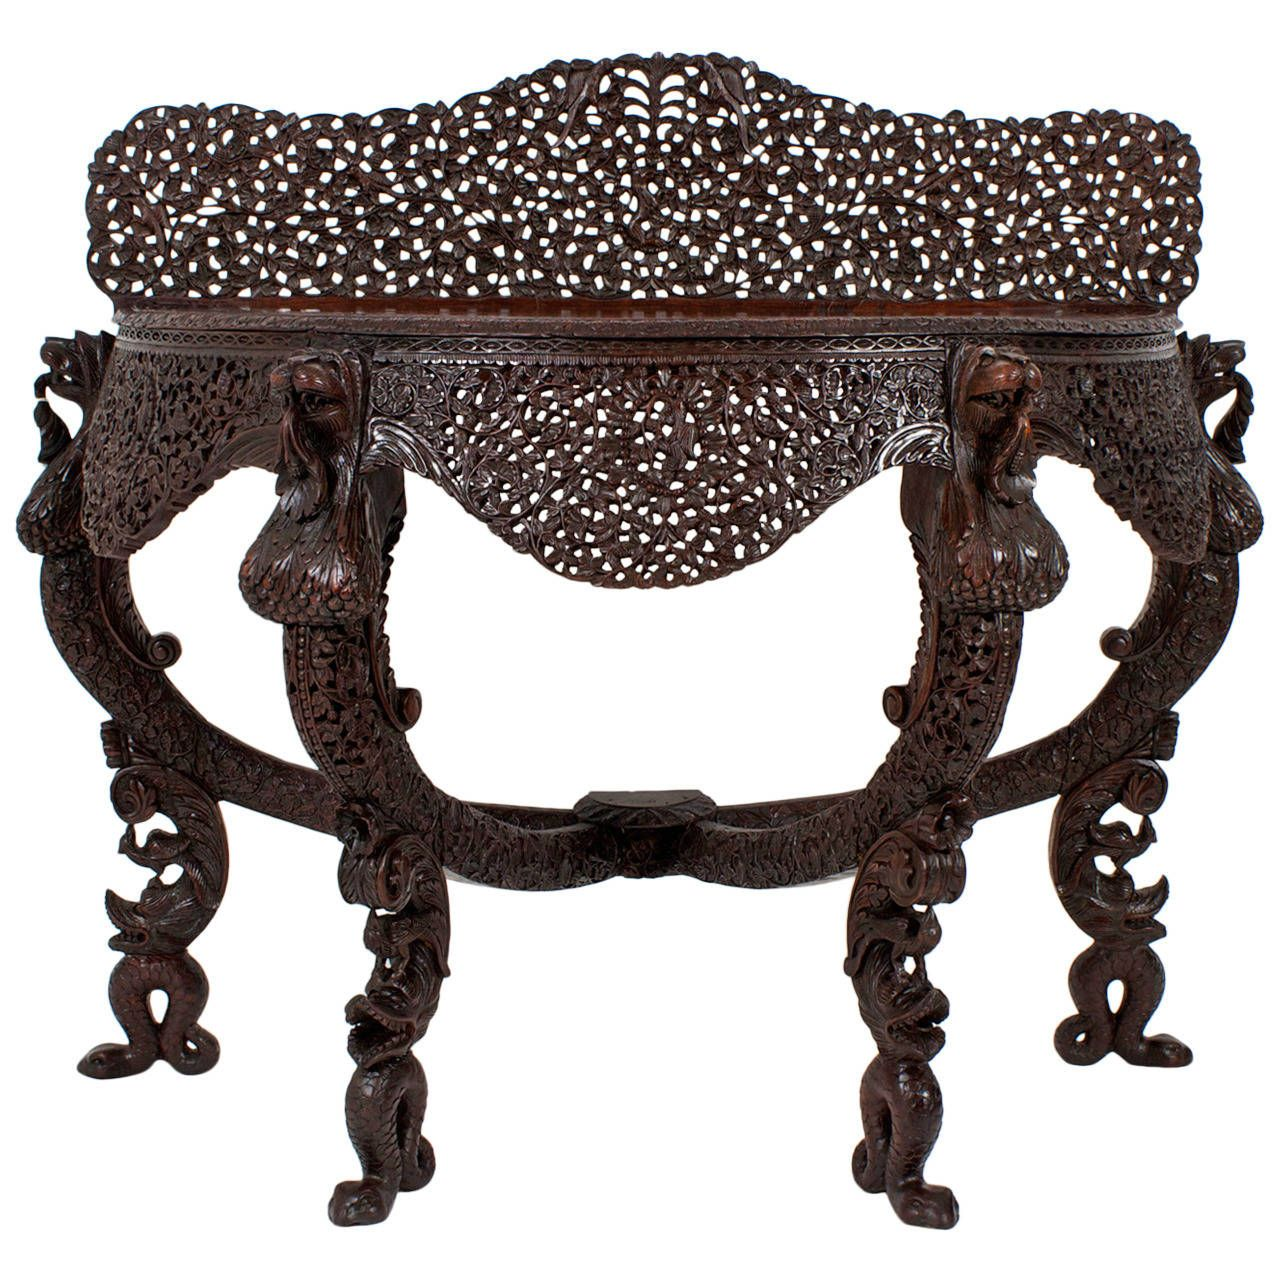 19th century anglo indian carved console table console tables 19th century anglo indian carved console table from a unique collection of antique and modern geotapseo Gallery